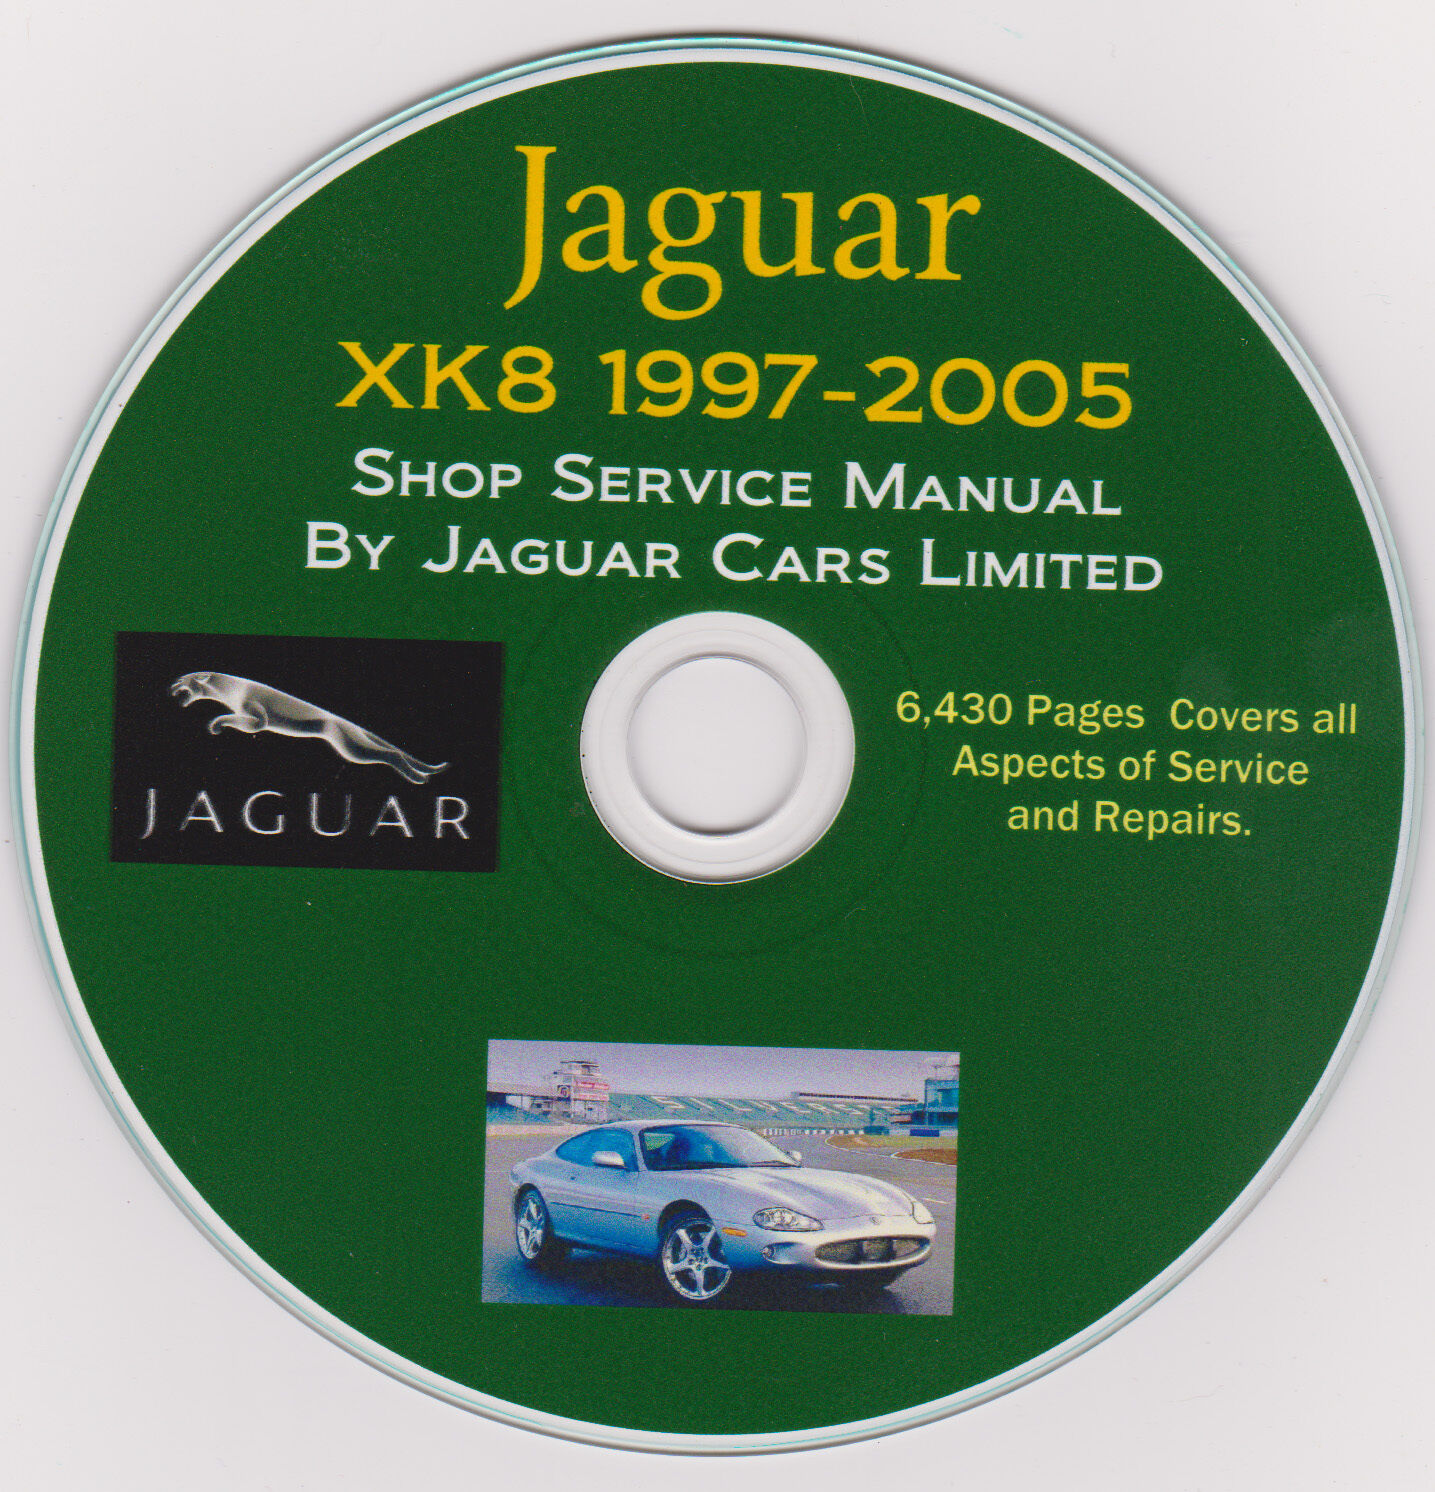 Jaguar XK8 1997 -2005 FACTORY SERVICE REPAIR SHOP & MAINTENANCE MANUAL +  Parts ! 1 of 1FREE Shipping See More